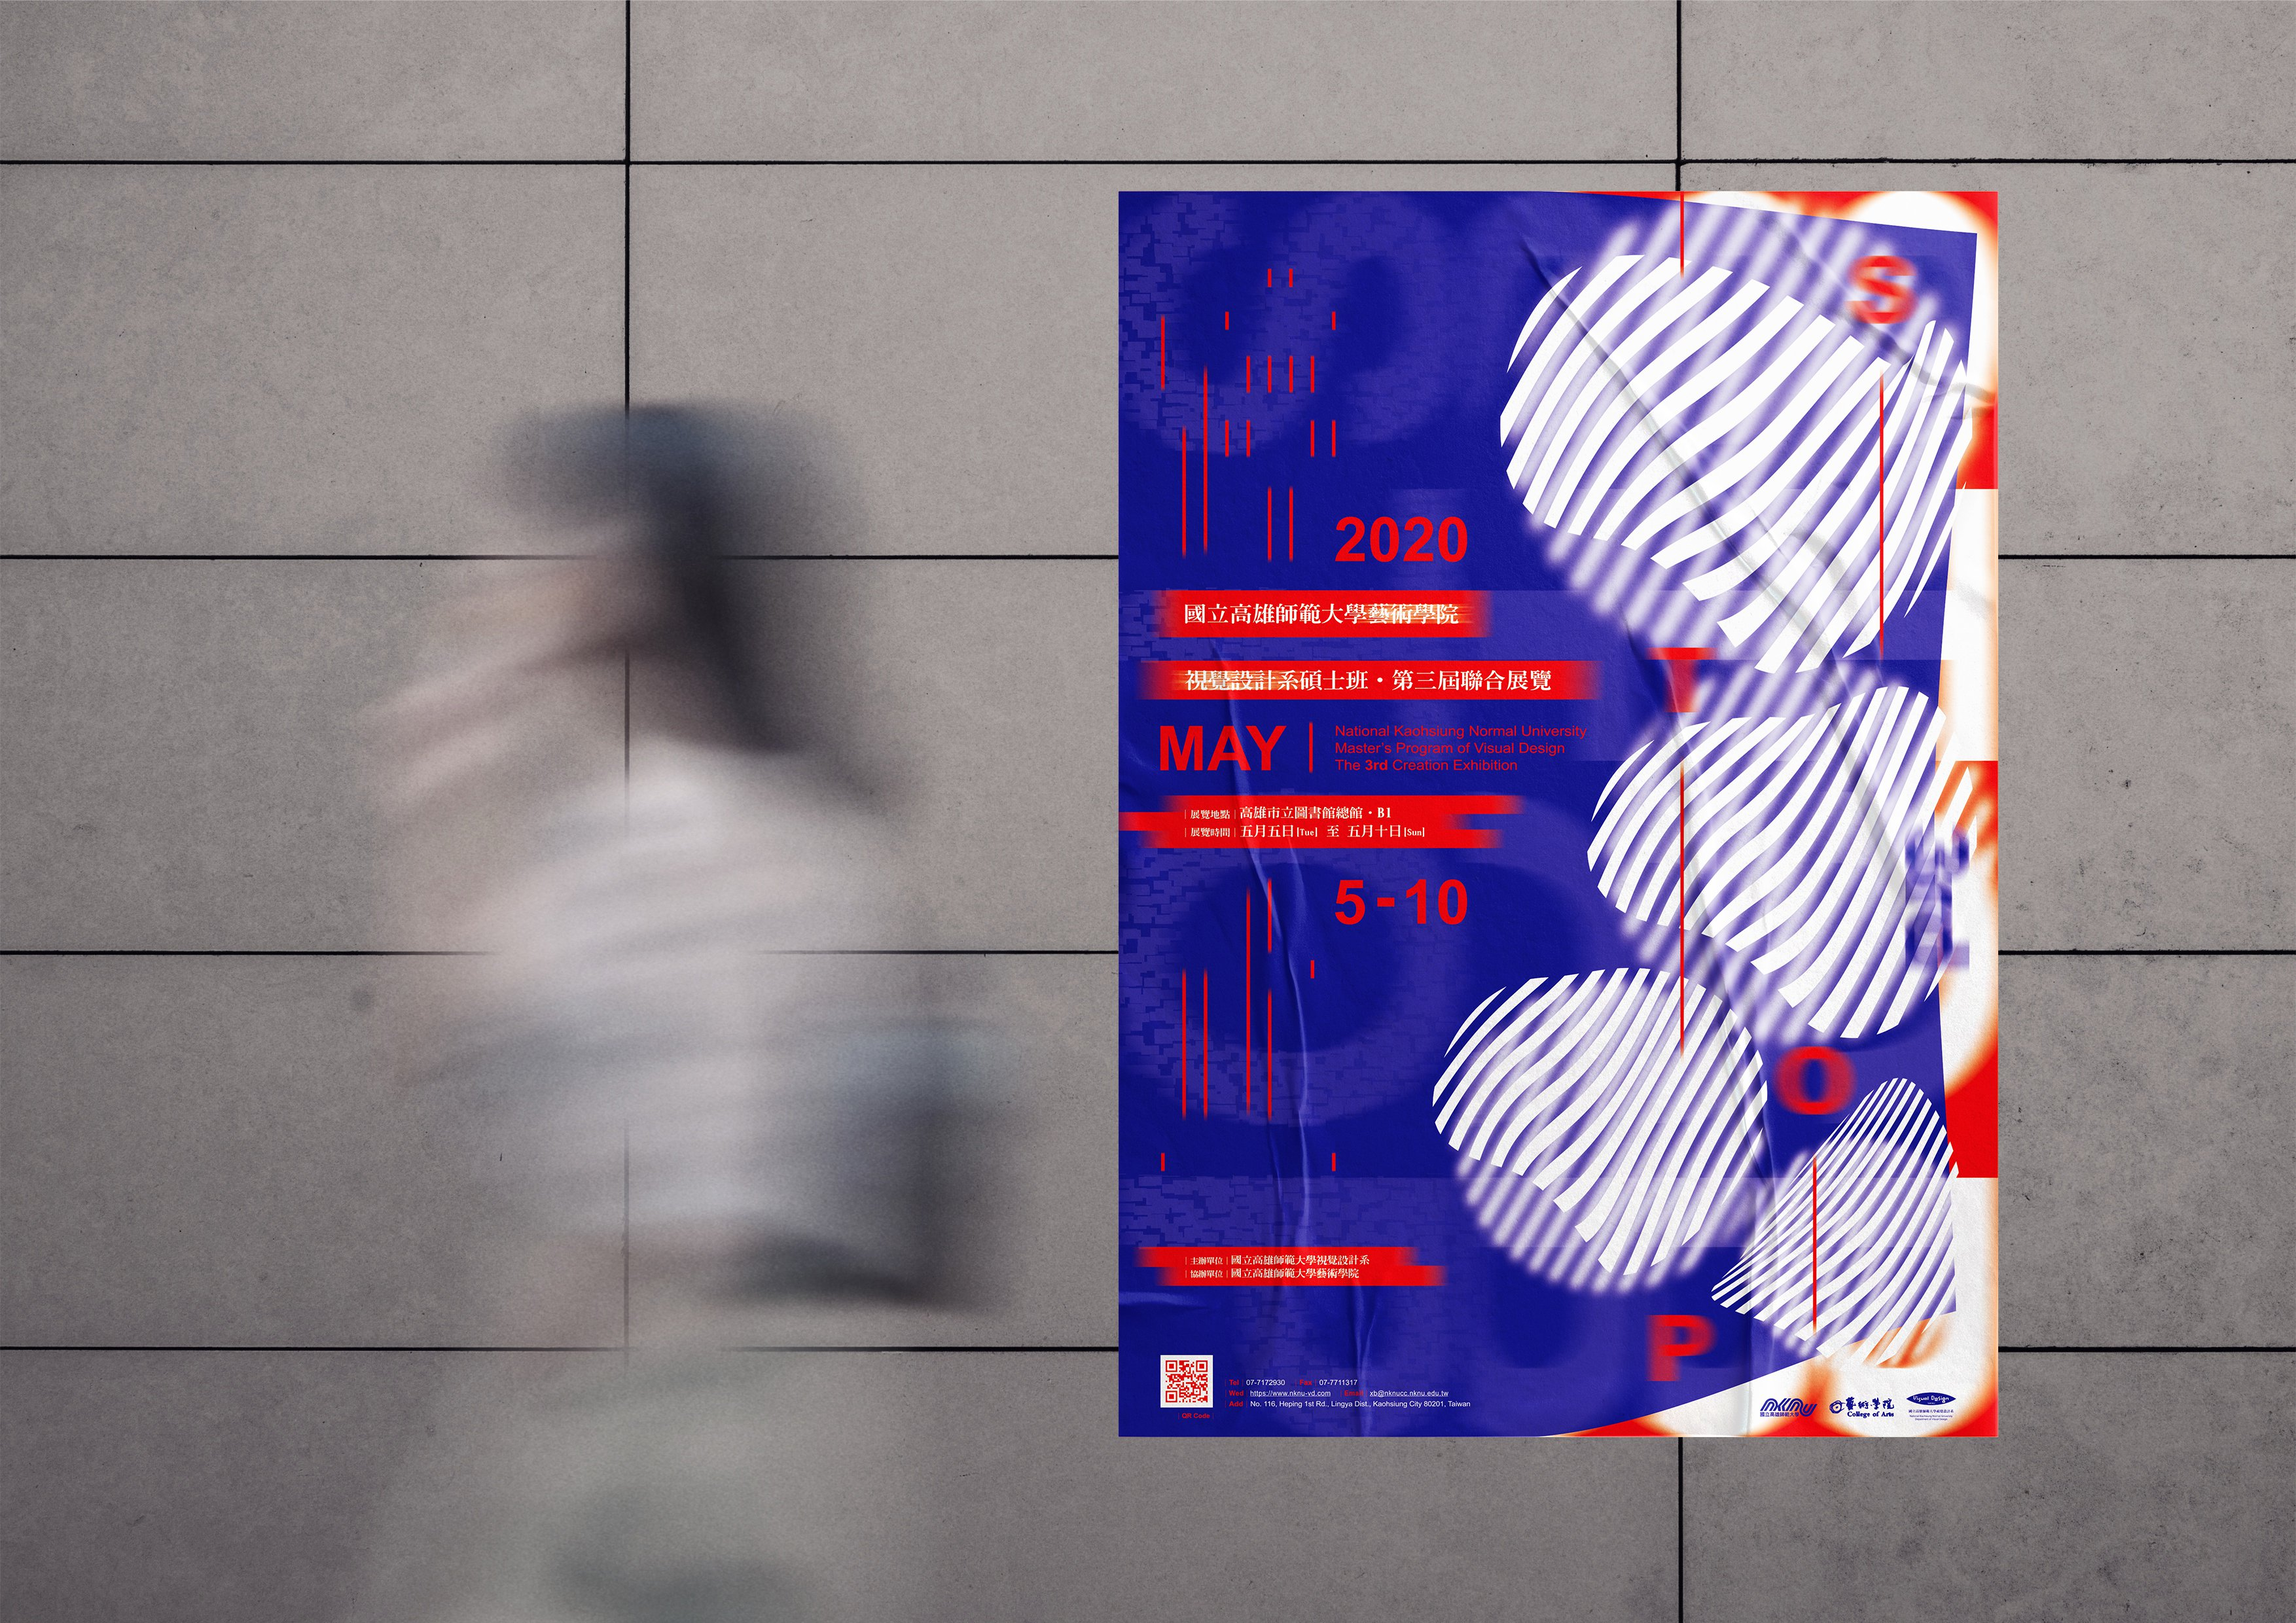 JenWei Huang Creates Master's Degree Students Exhibition Design Identity